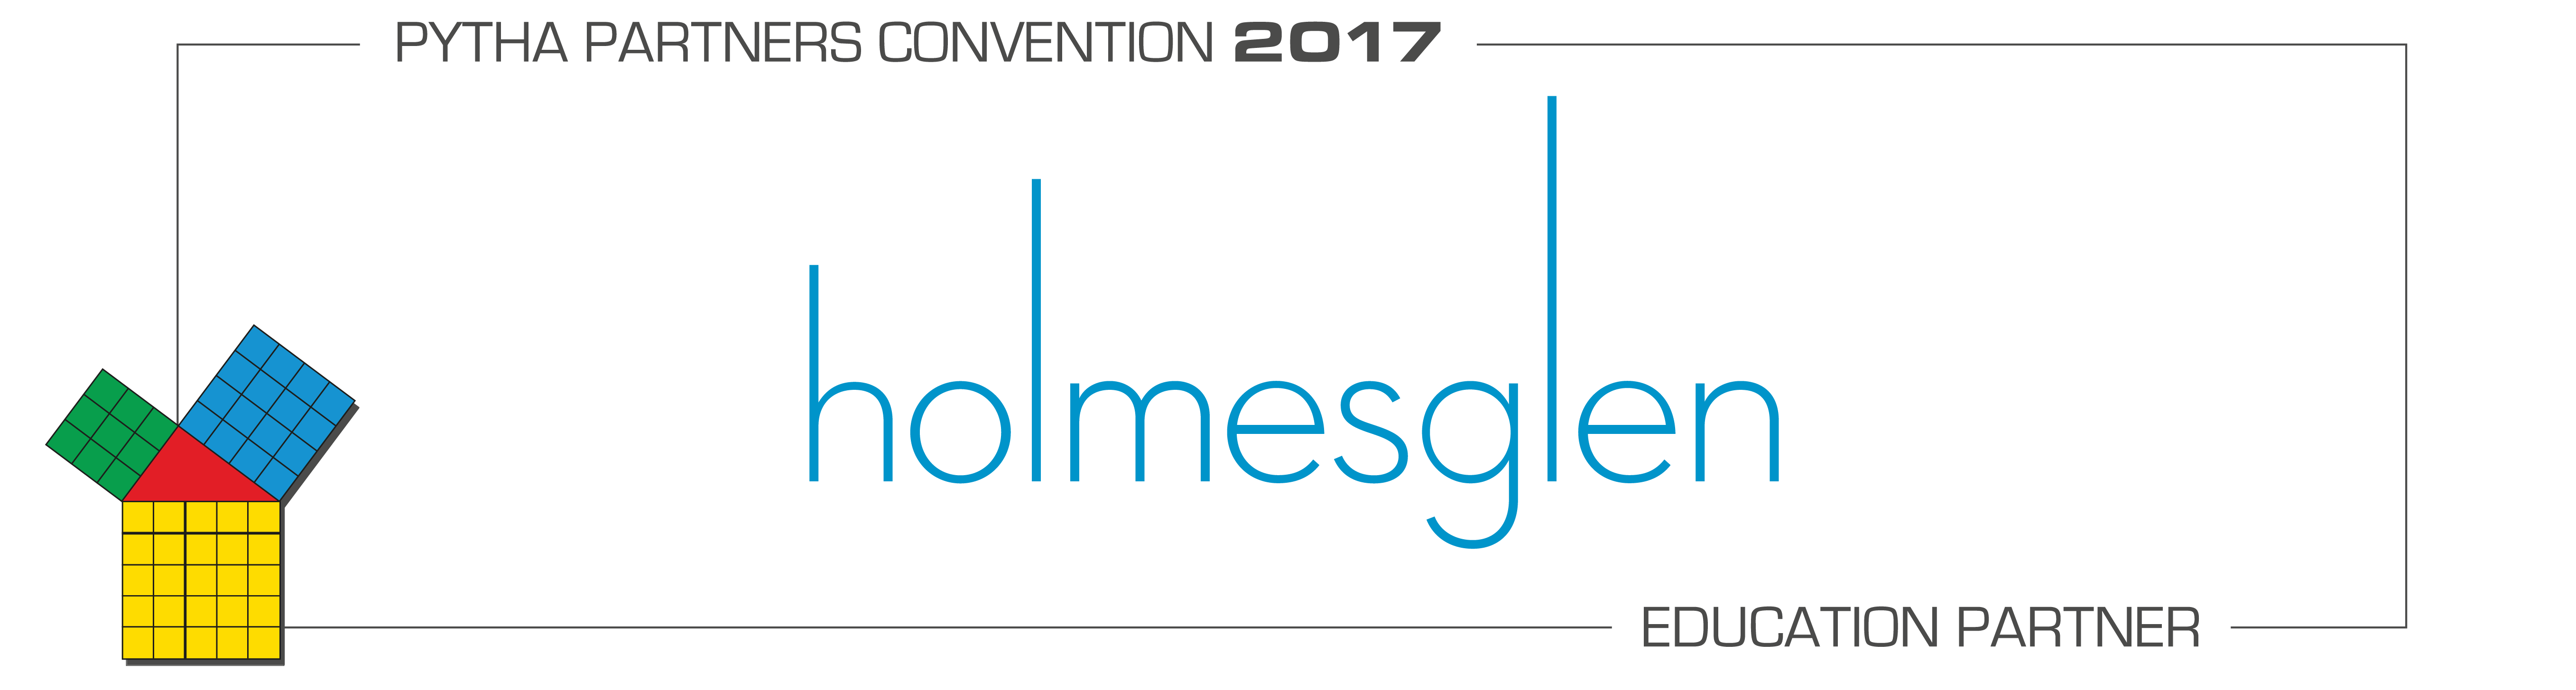 Pytha_Education Partner_Holmesglen_Logo-01